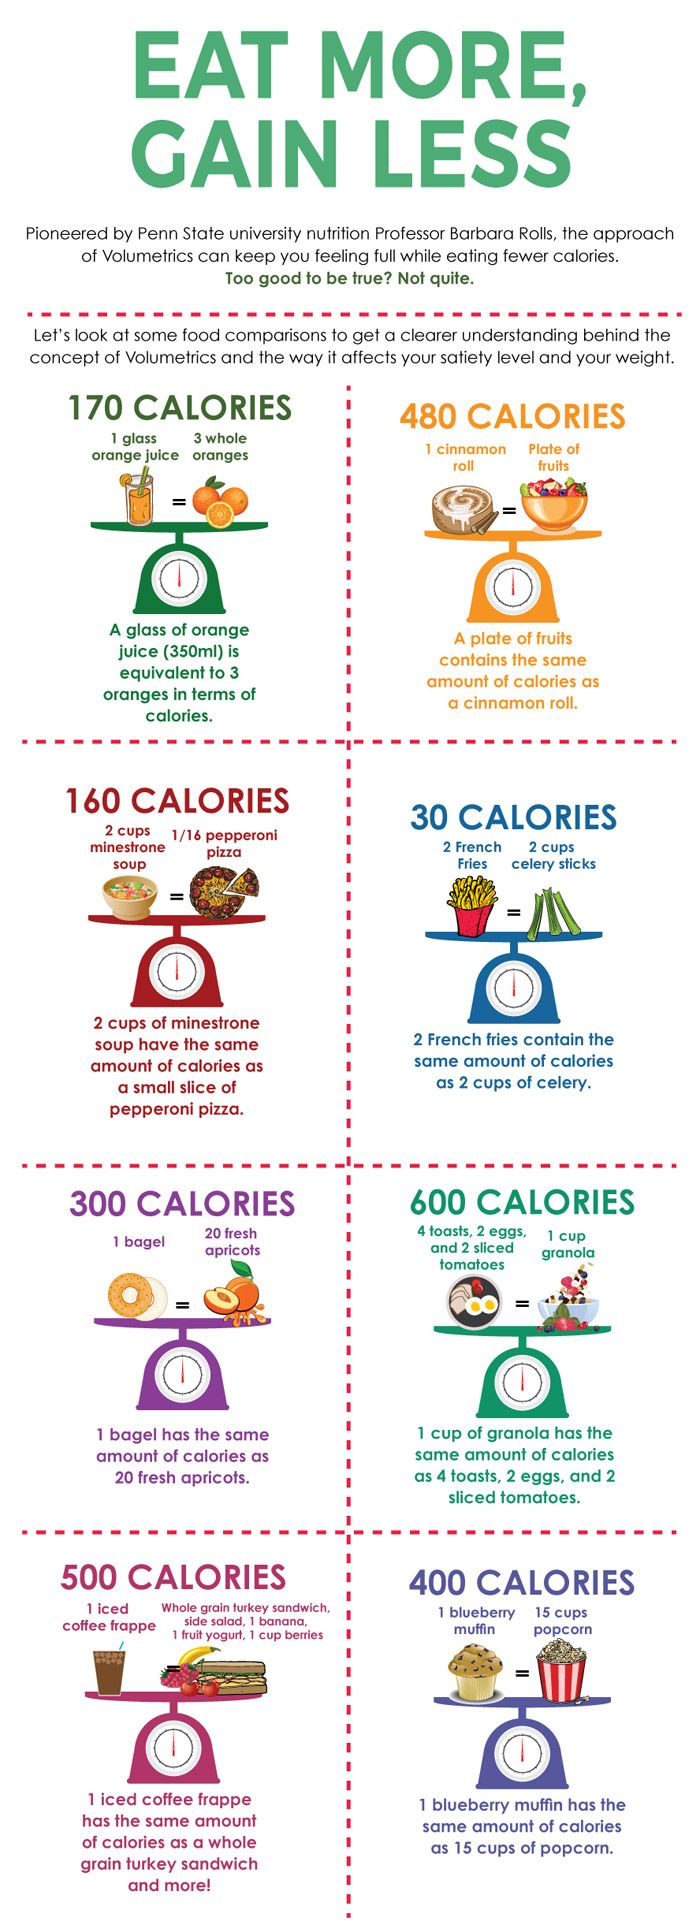 How Can Eating More Calories Help You Lose Weight?